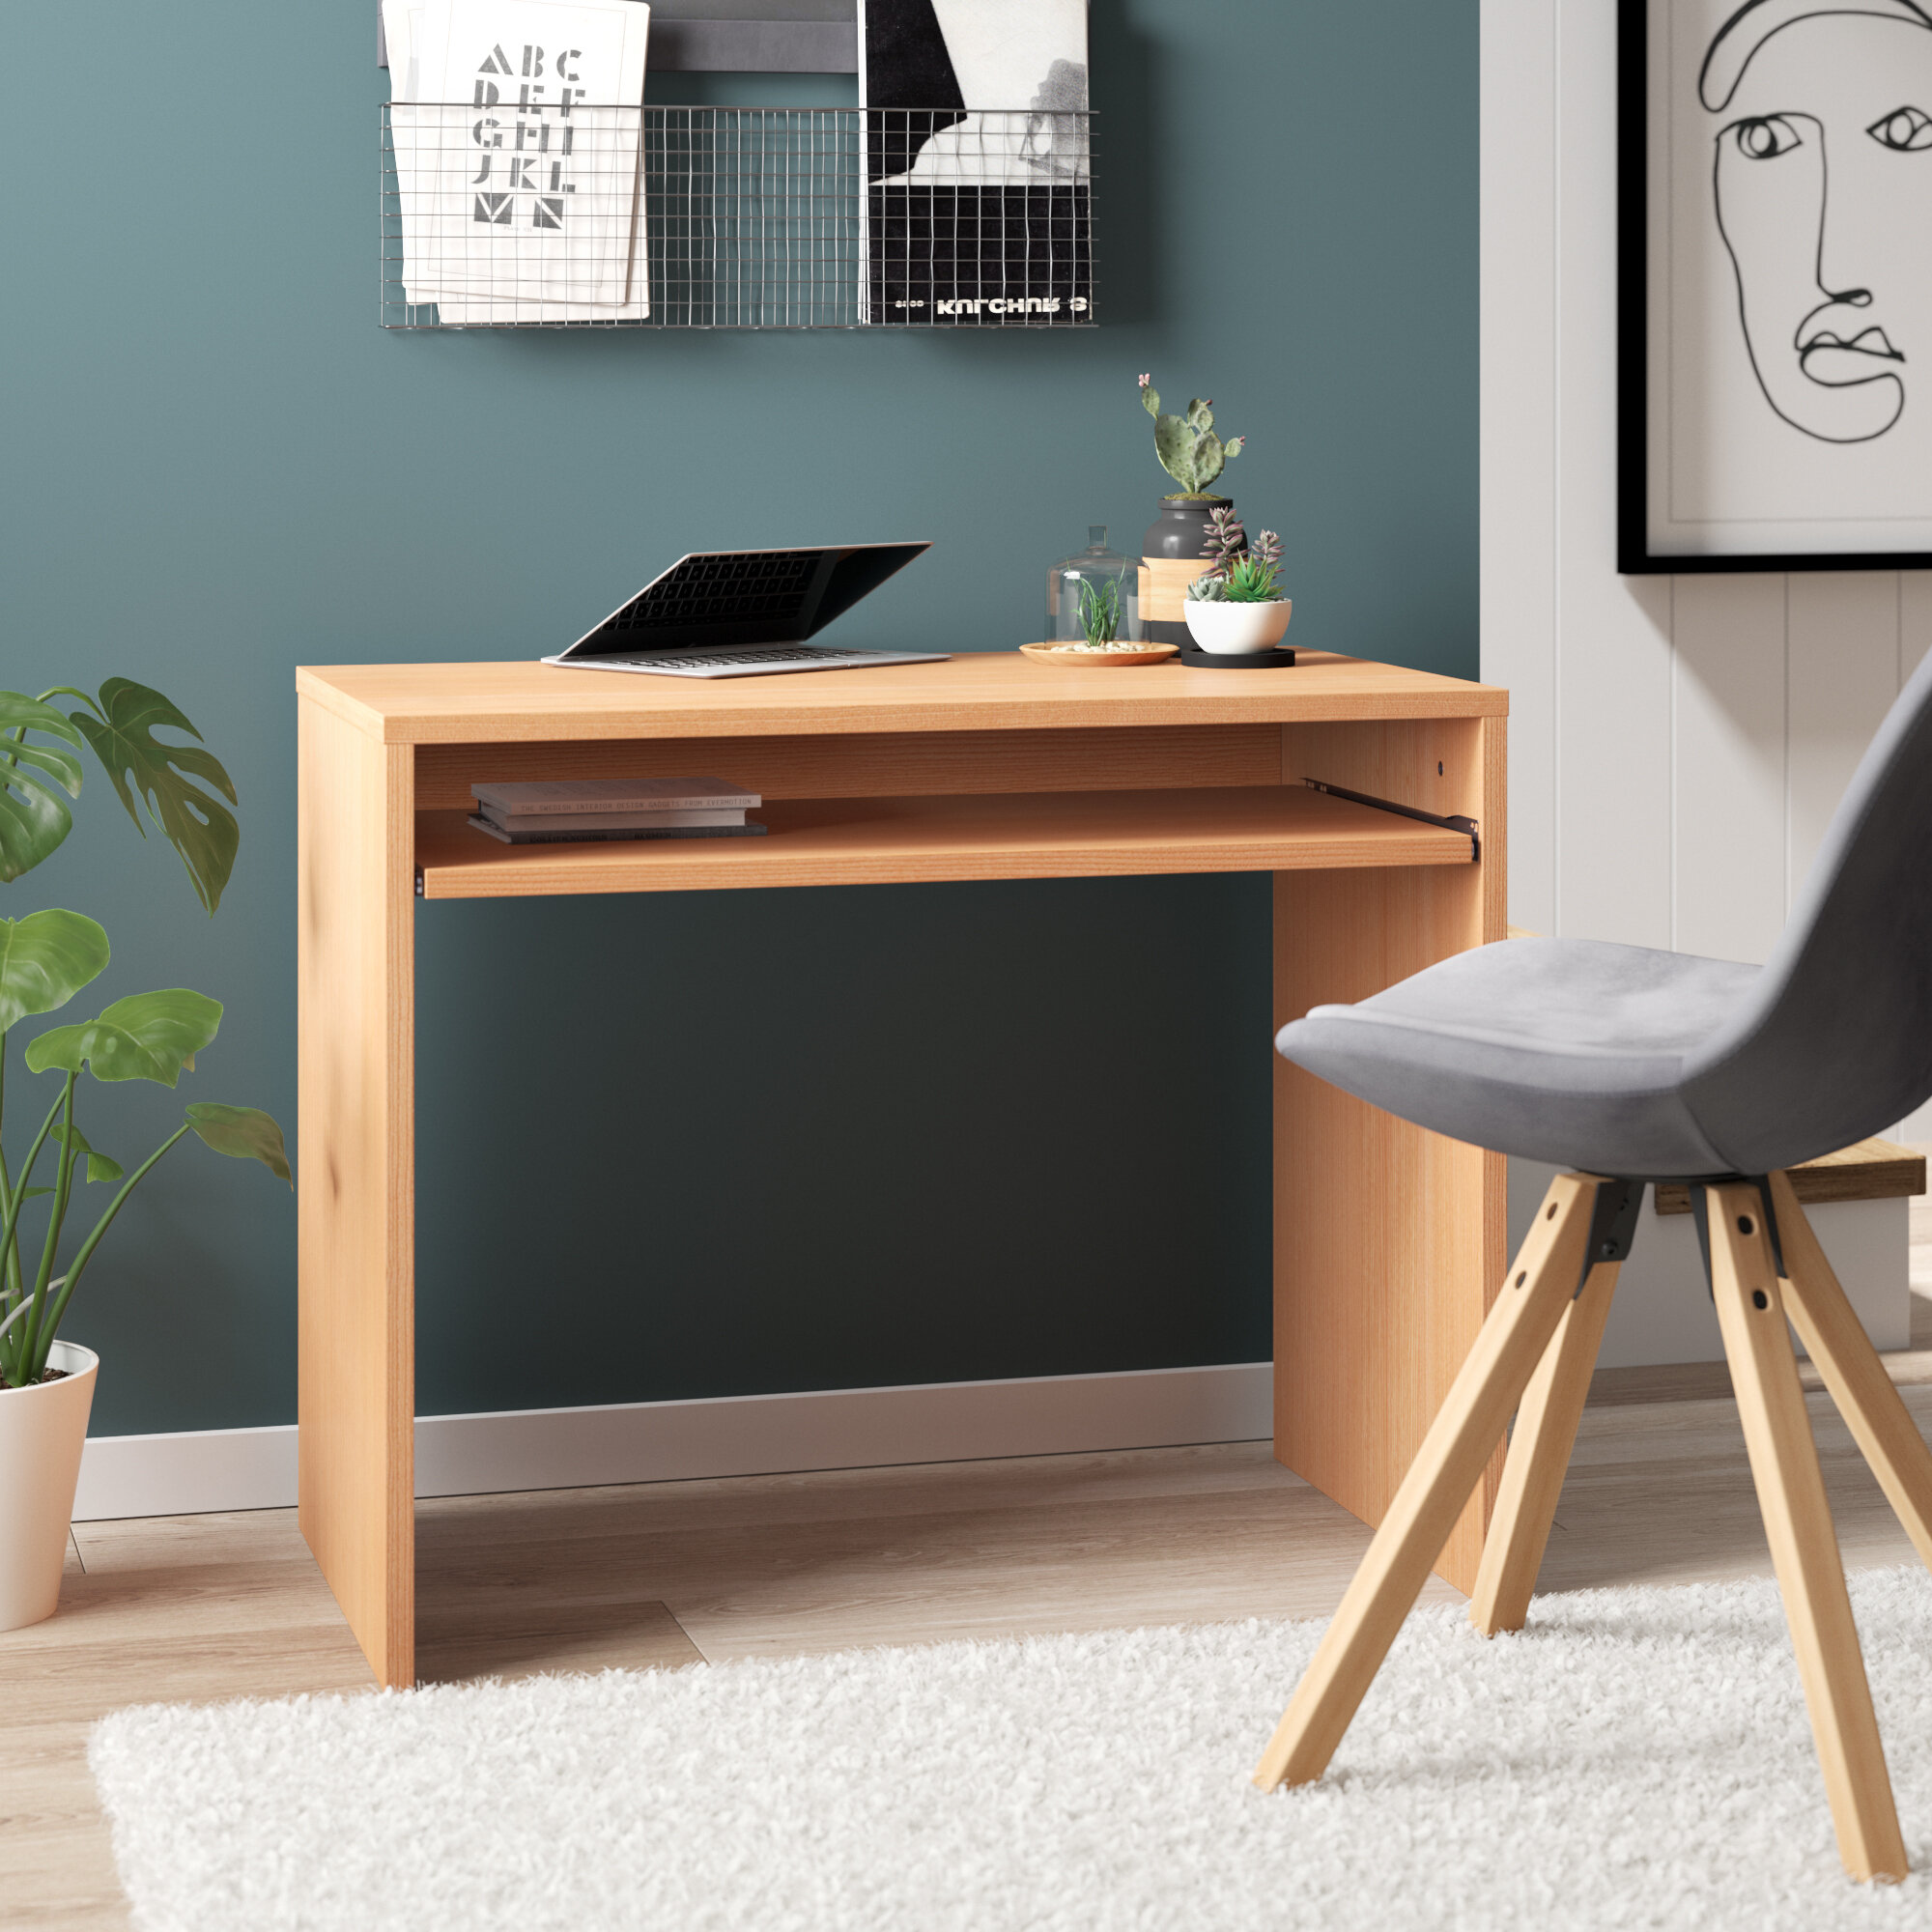 17 Stories Computer Desk Reviews Wayfair Co Uk